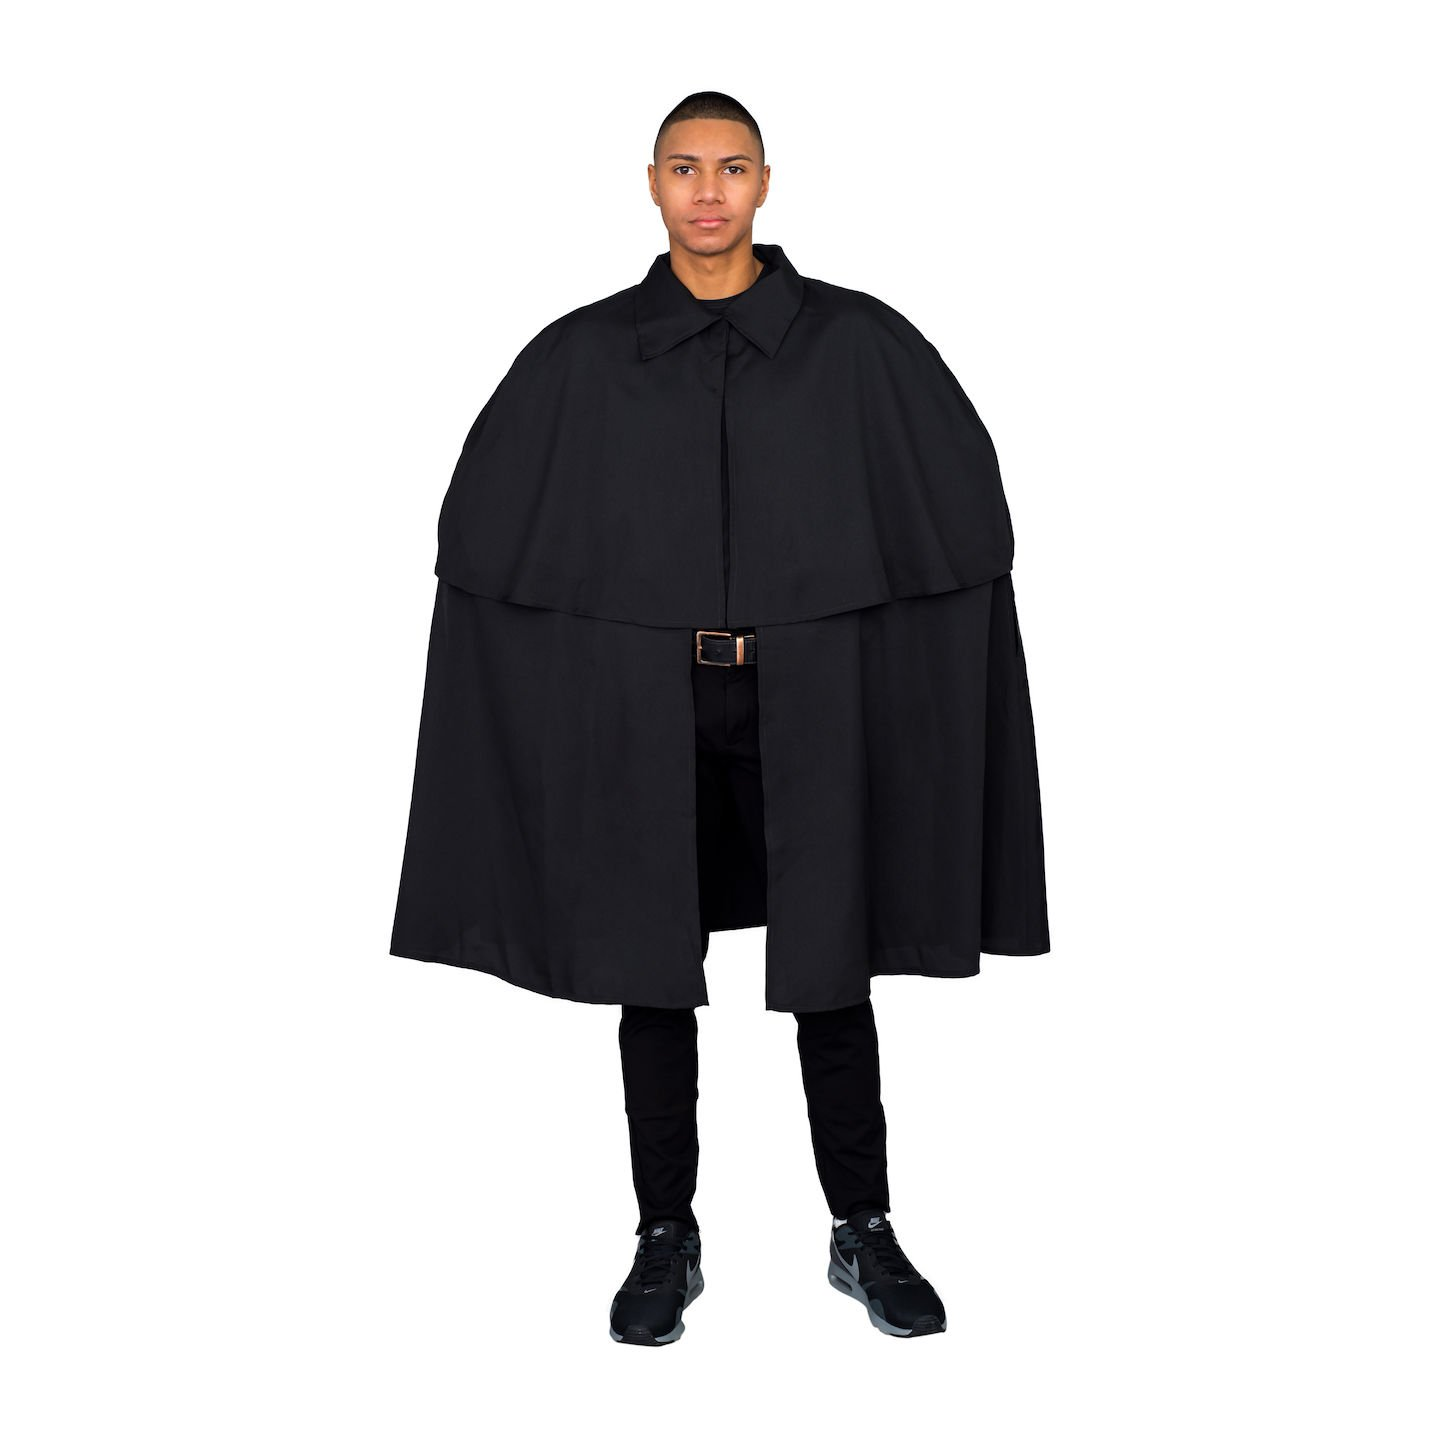 Victorian Mens Suits & Coats Costume Agent Victorian Era Sherlock Detective Cloak Cape Coat $29.95 AT vintagedancer.com